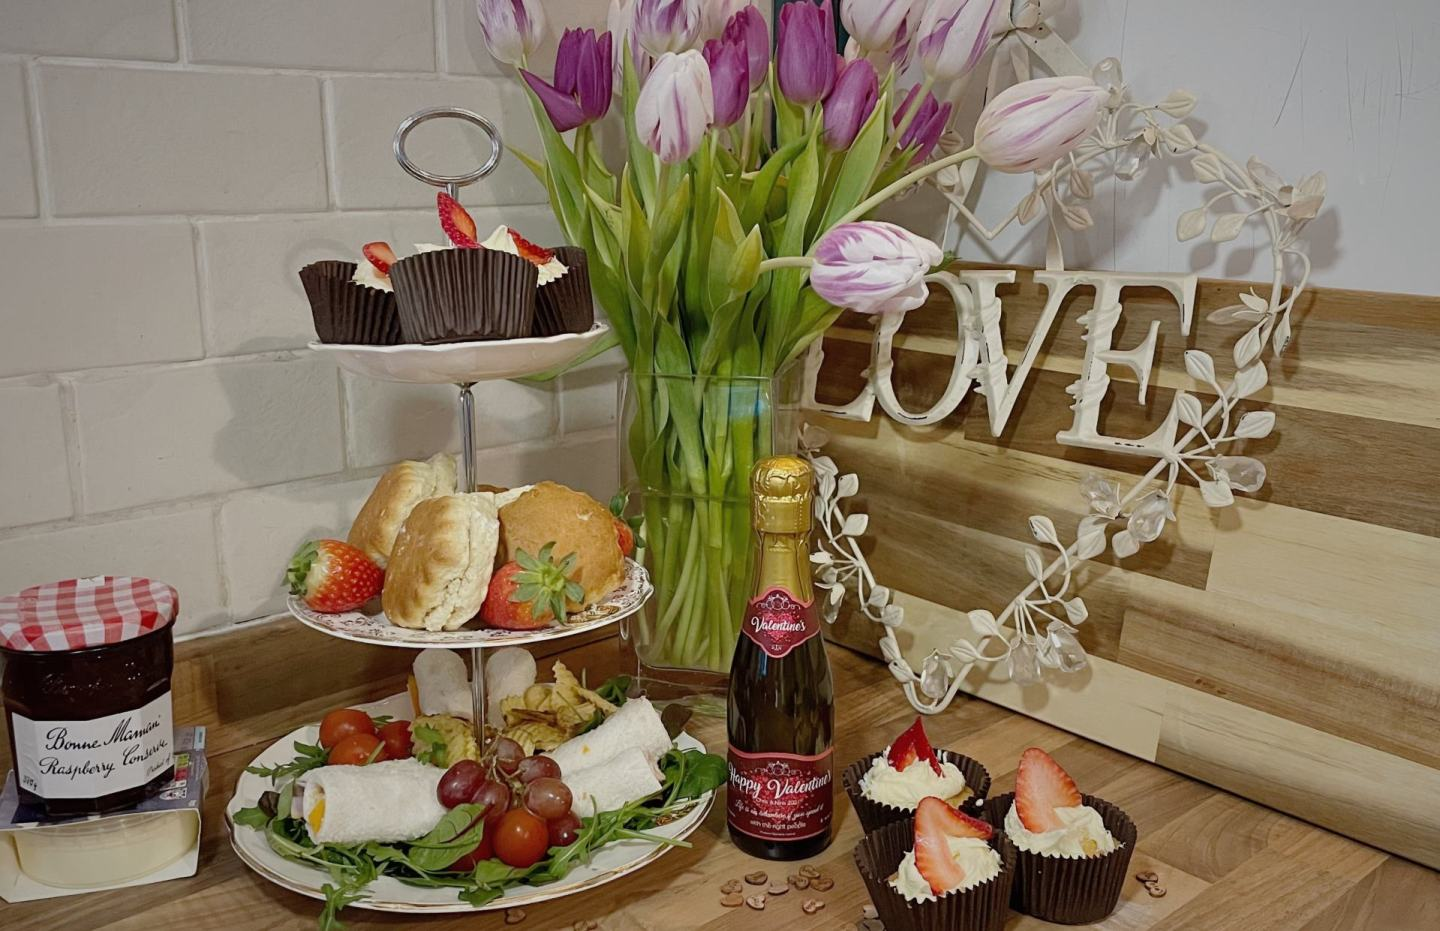 afternoon tea spread with scones, cupcakes and sandwich rolls on a three tier cake stand with a metal love sign behind. bottle of personalised prosecco in the middle of picture.